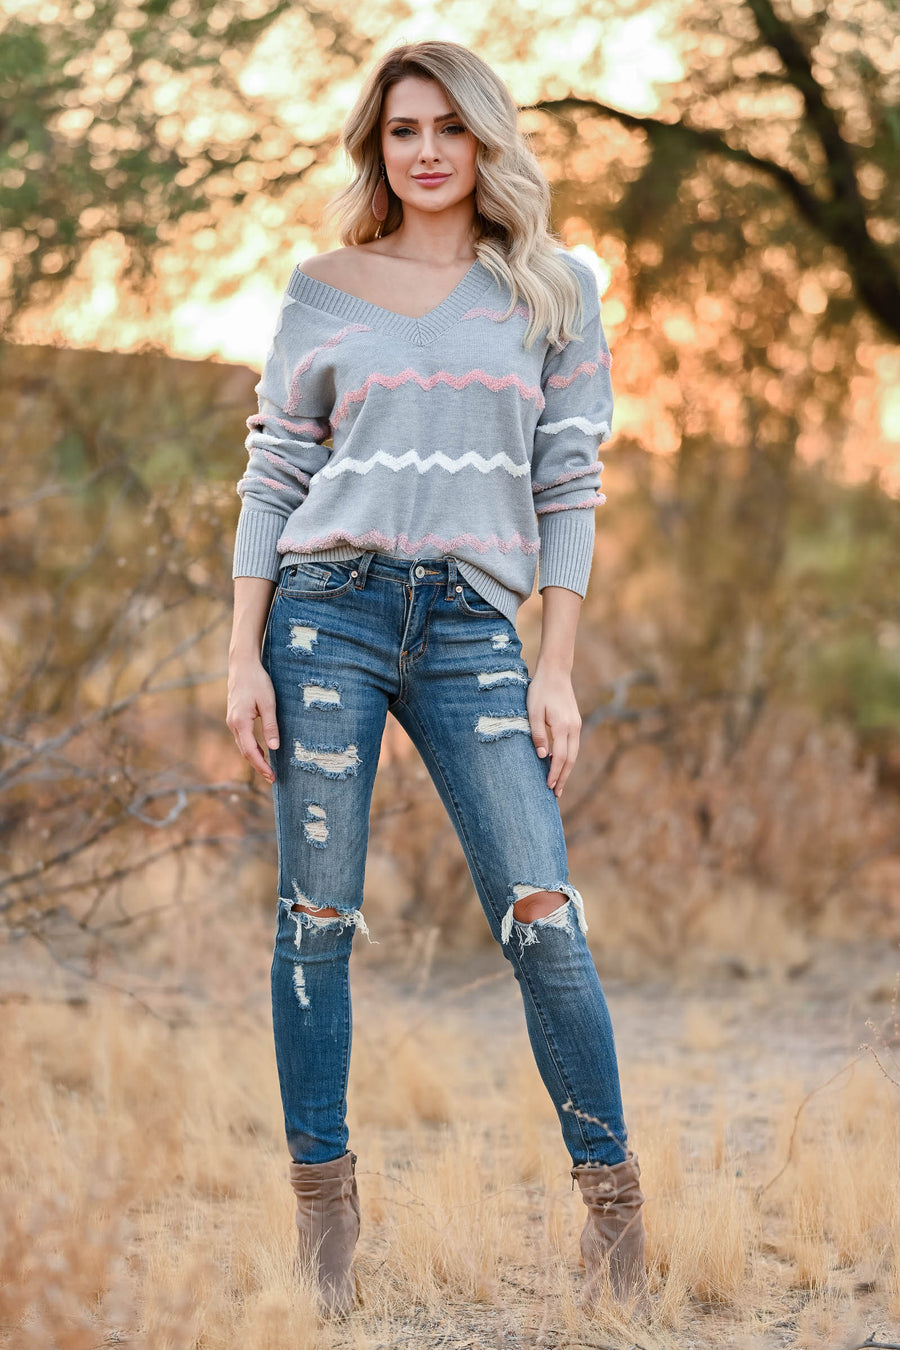 Stylish Vision Sweater - Heather Grey womens trendy knit long sleeve chevron sweater closet candy front